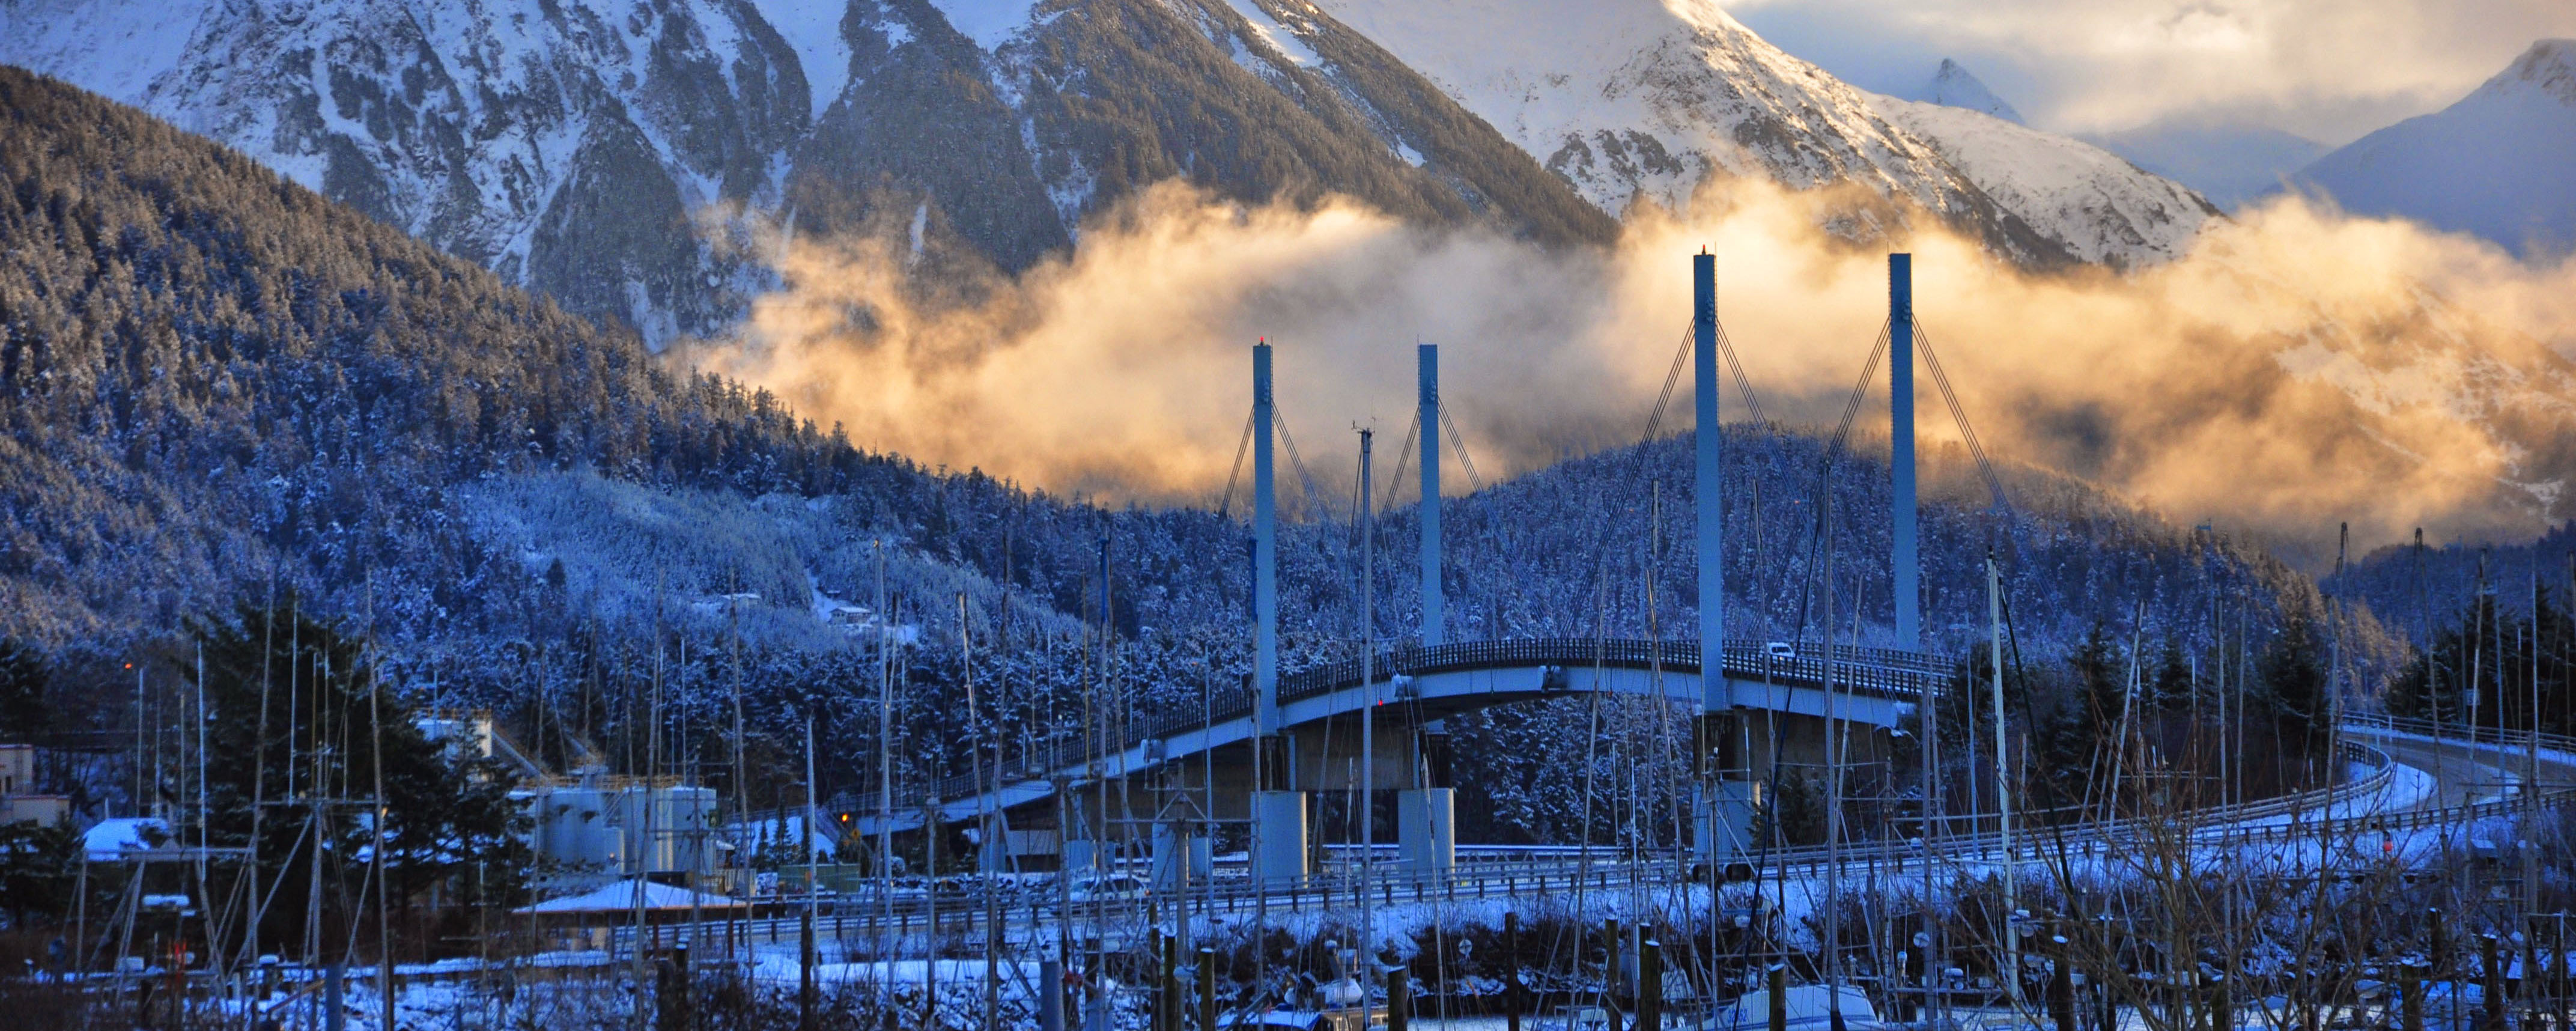 Bridge and mountains in blue light. Credit: Berett Wilber.